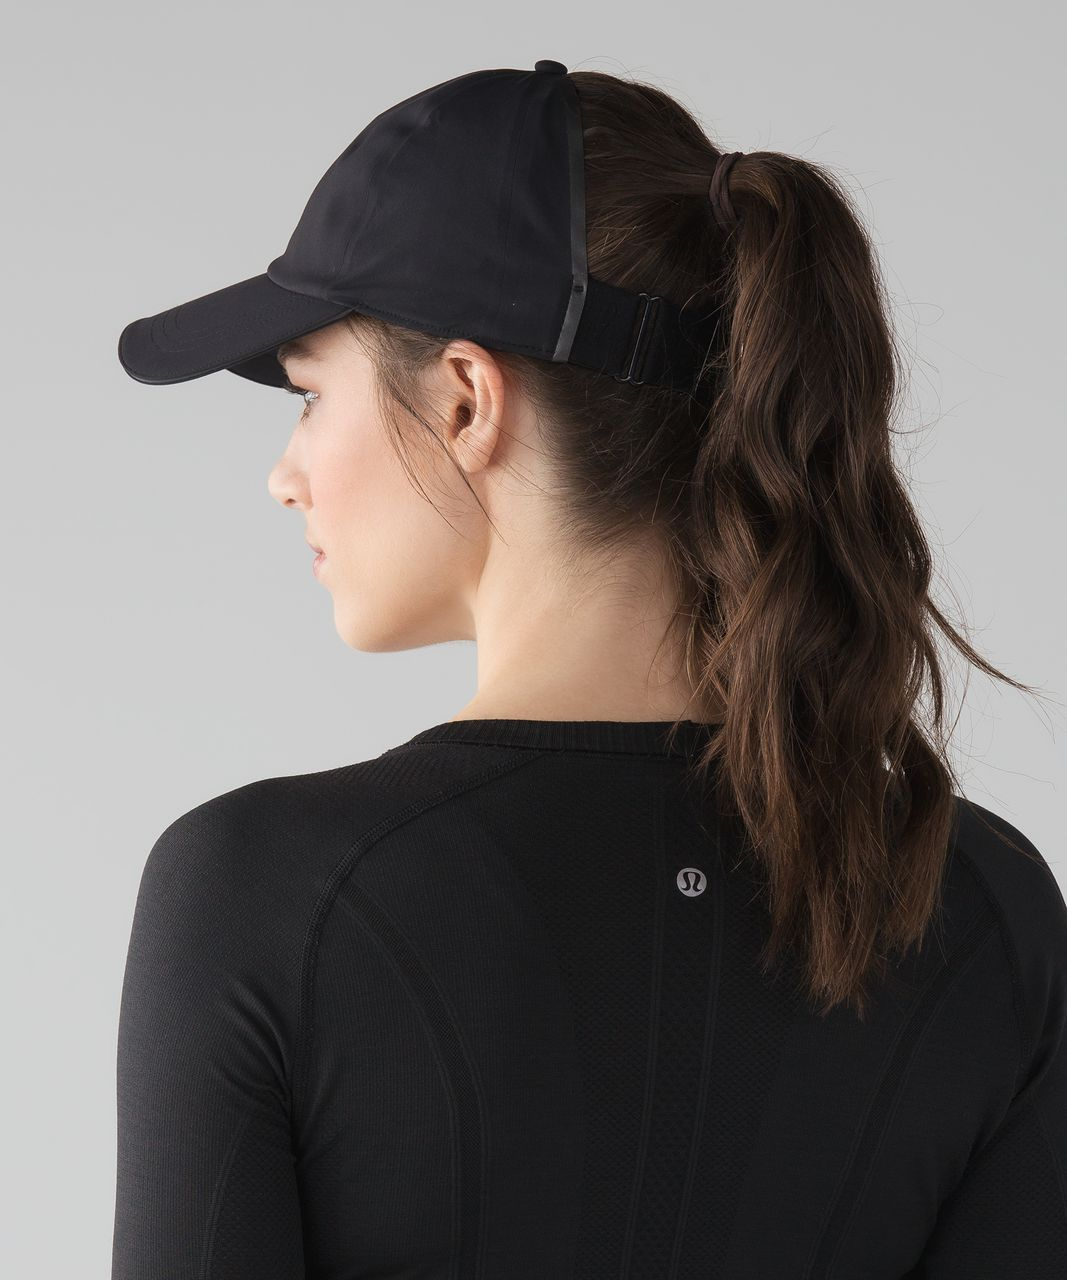 Lululemon Baller Hat Run  Ponytail - Black - lulu fanatics f55ebccfeb5